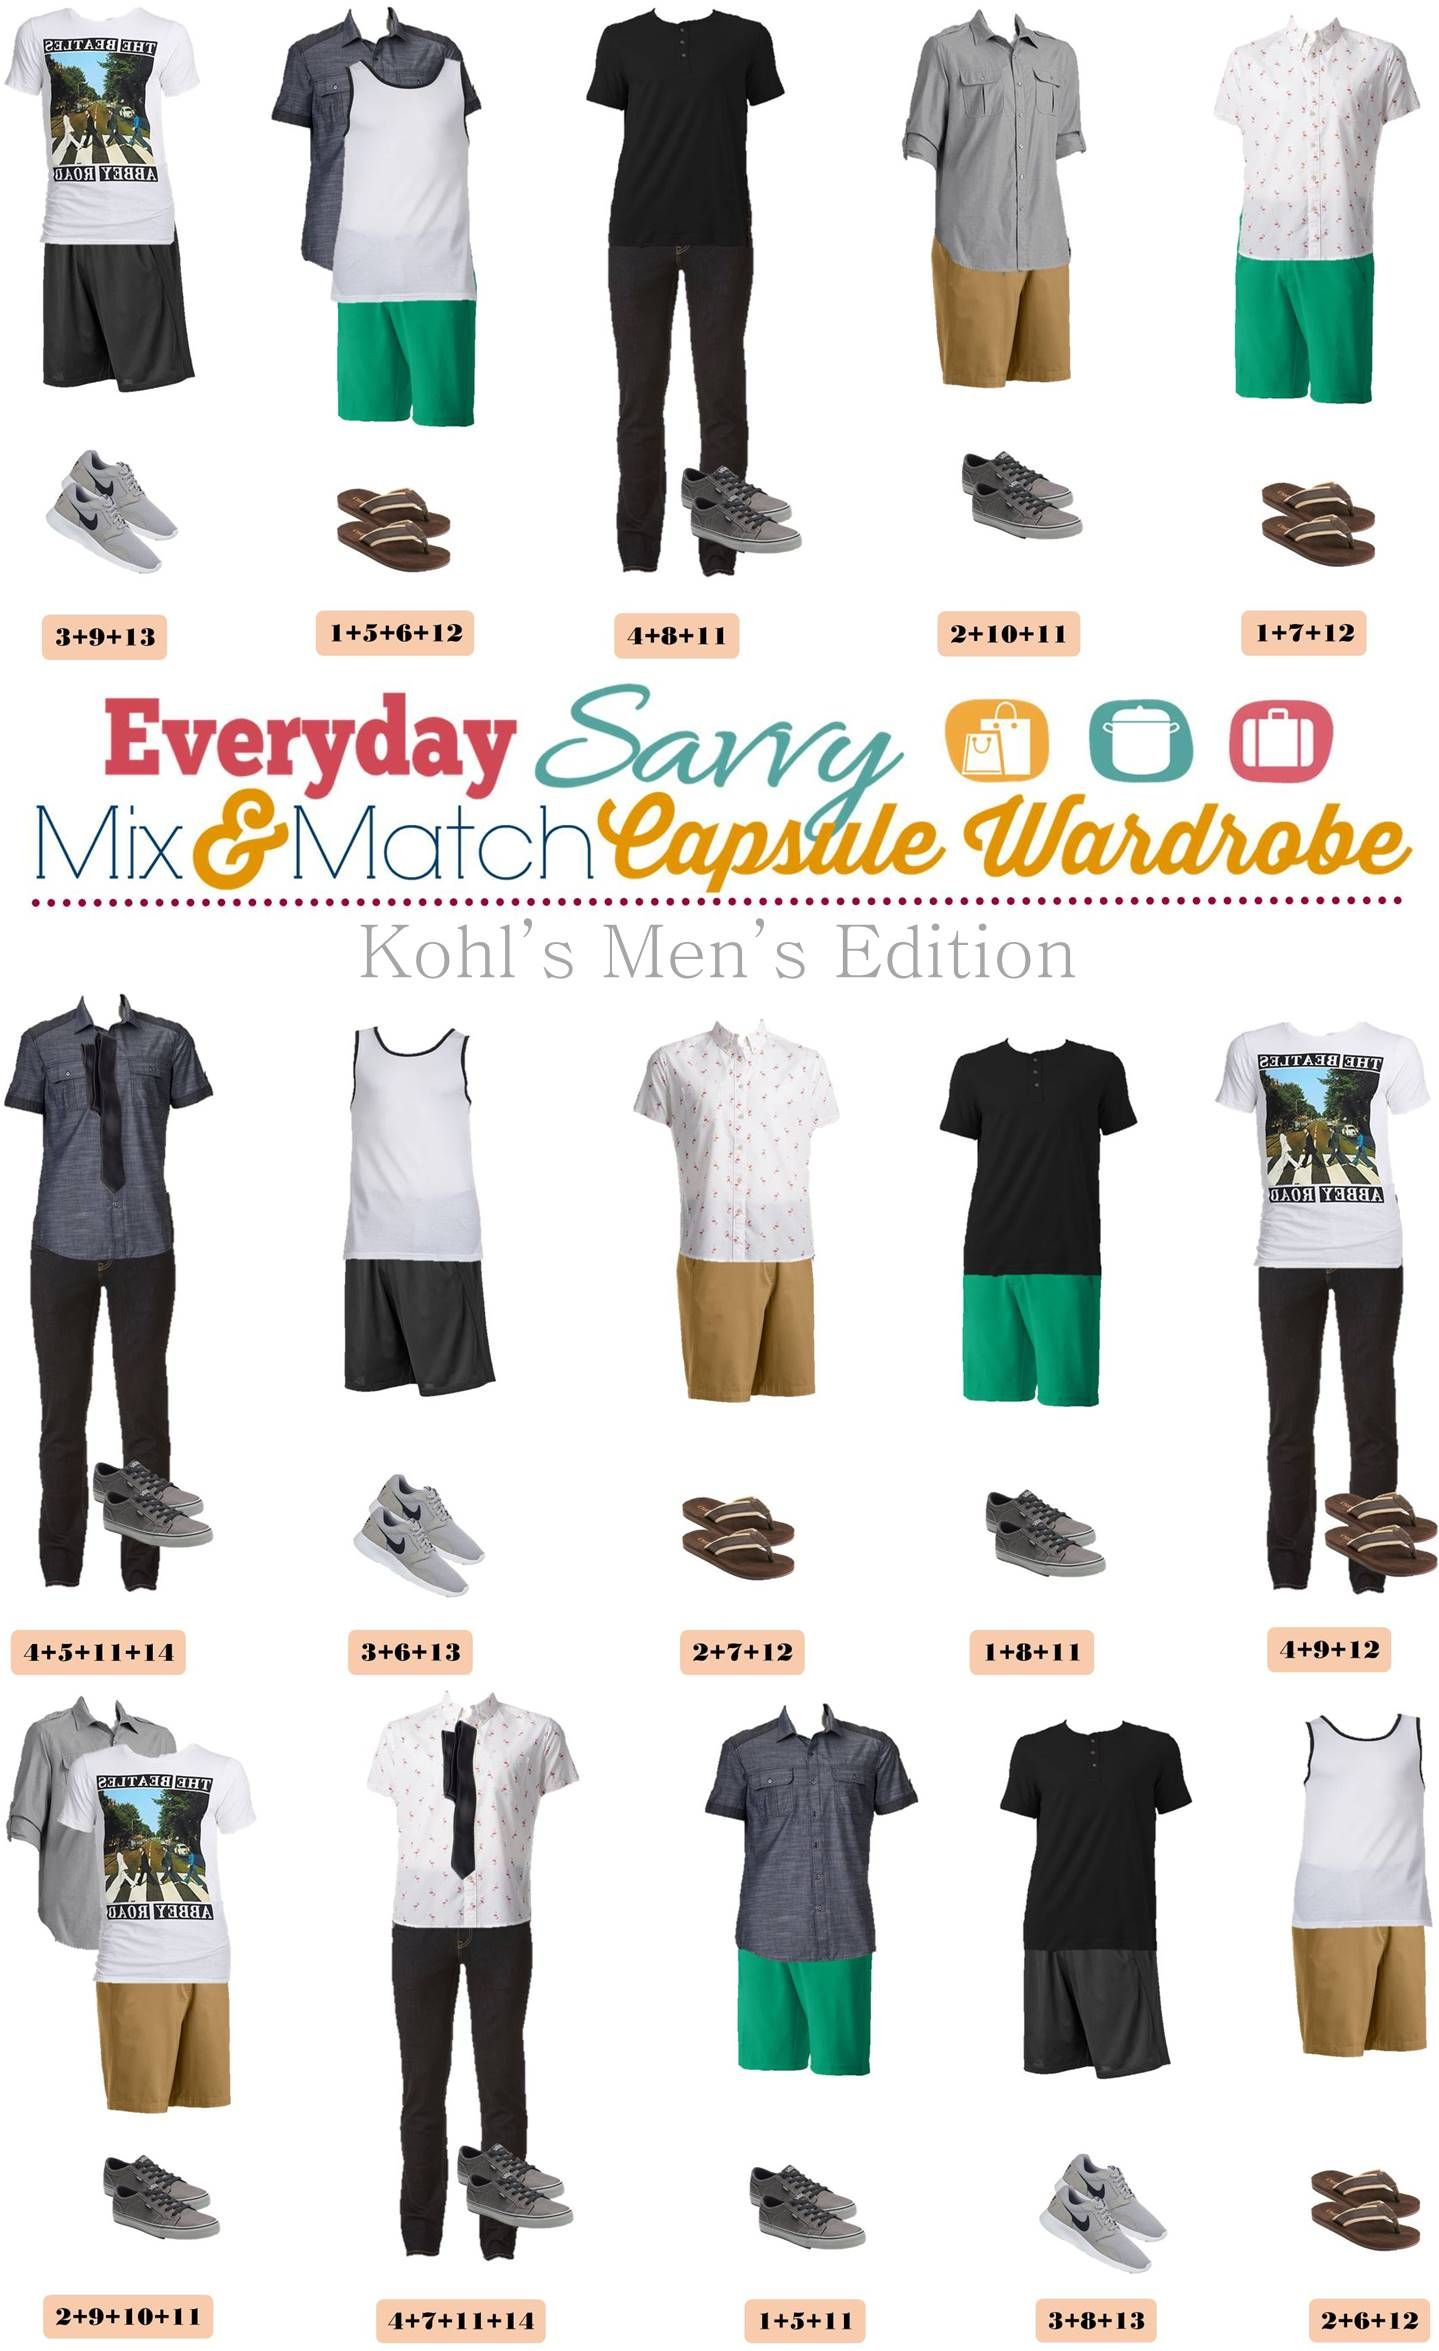 kohls men s capsule wardrobe for spring summer capsule wardrobe